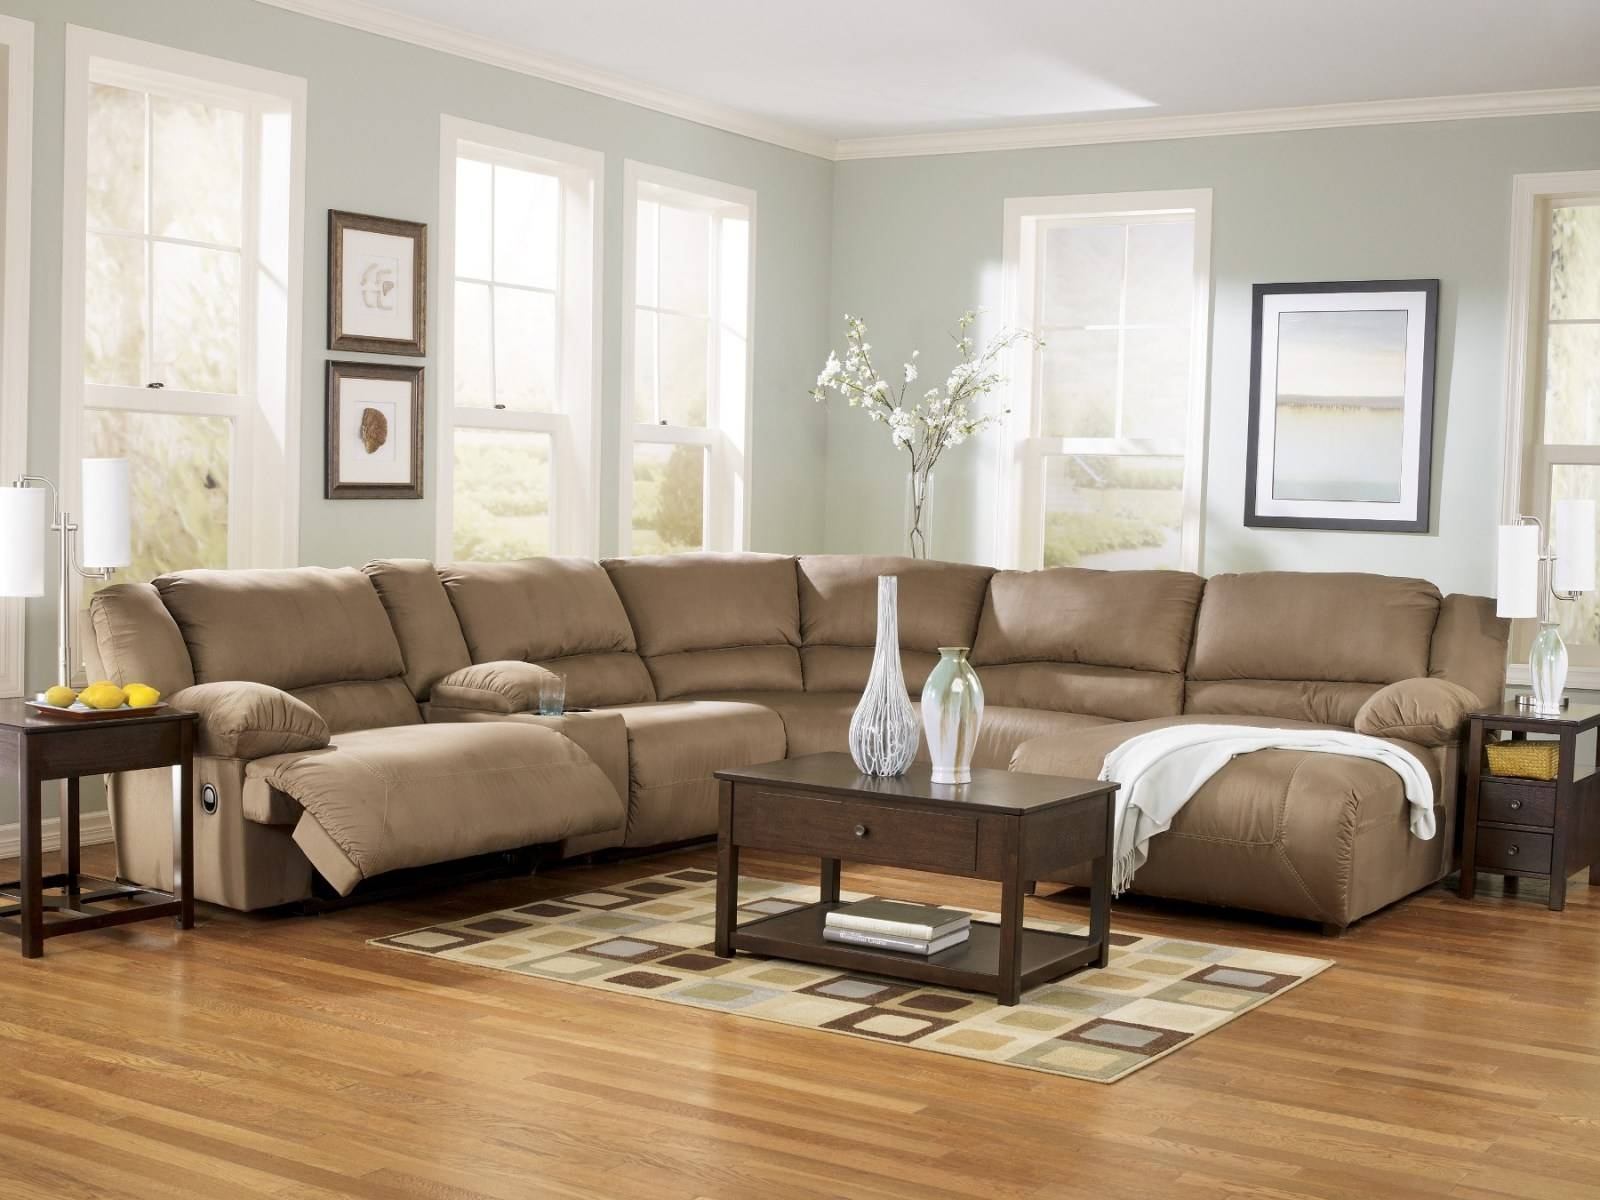 ▻ Sofa : 27 Living Room Sectional Ideas Sofas For Small Modern with regard to Cool Sofa Ideas (Image 27 of 30)